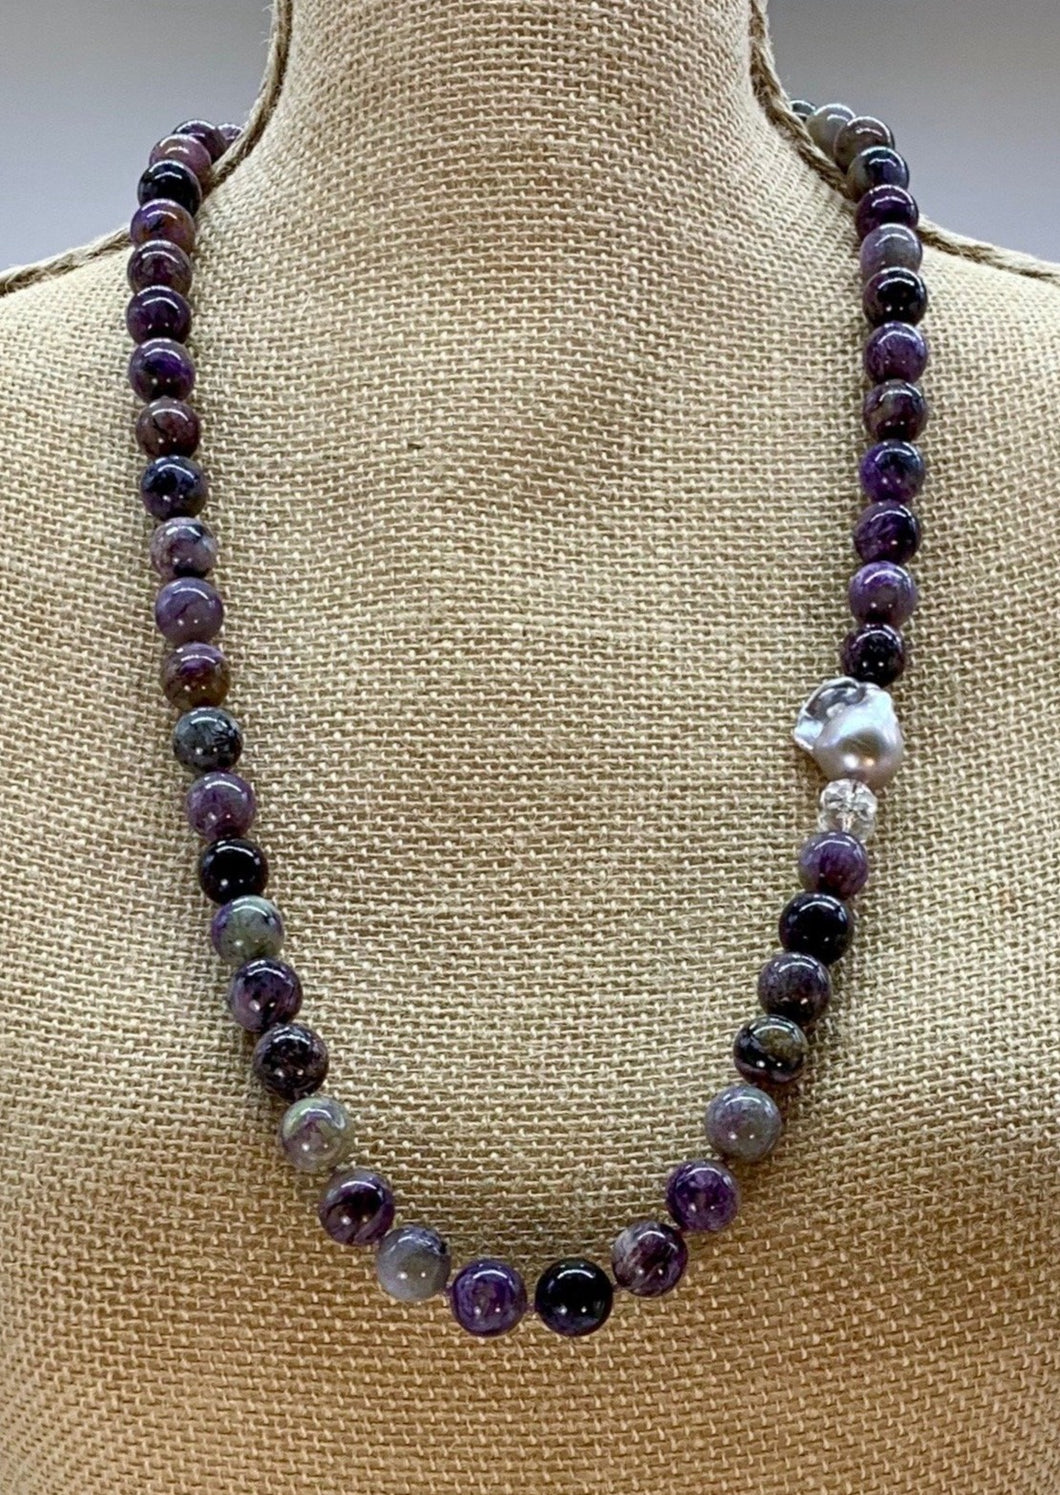 CHAROITE, QUARTZ & BAROQUE PEARL NECKLACE -WANTED ONE OF A KIND